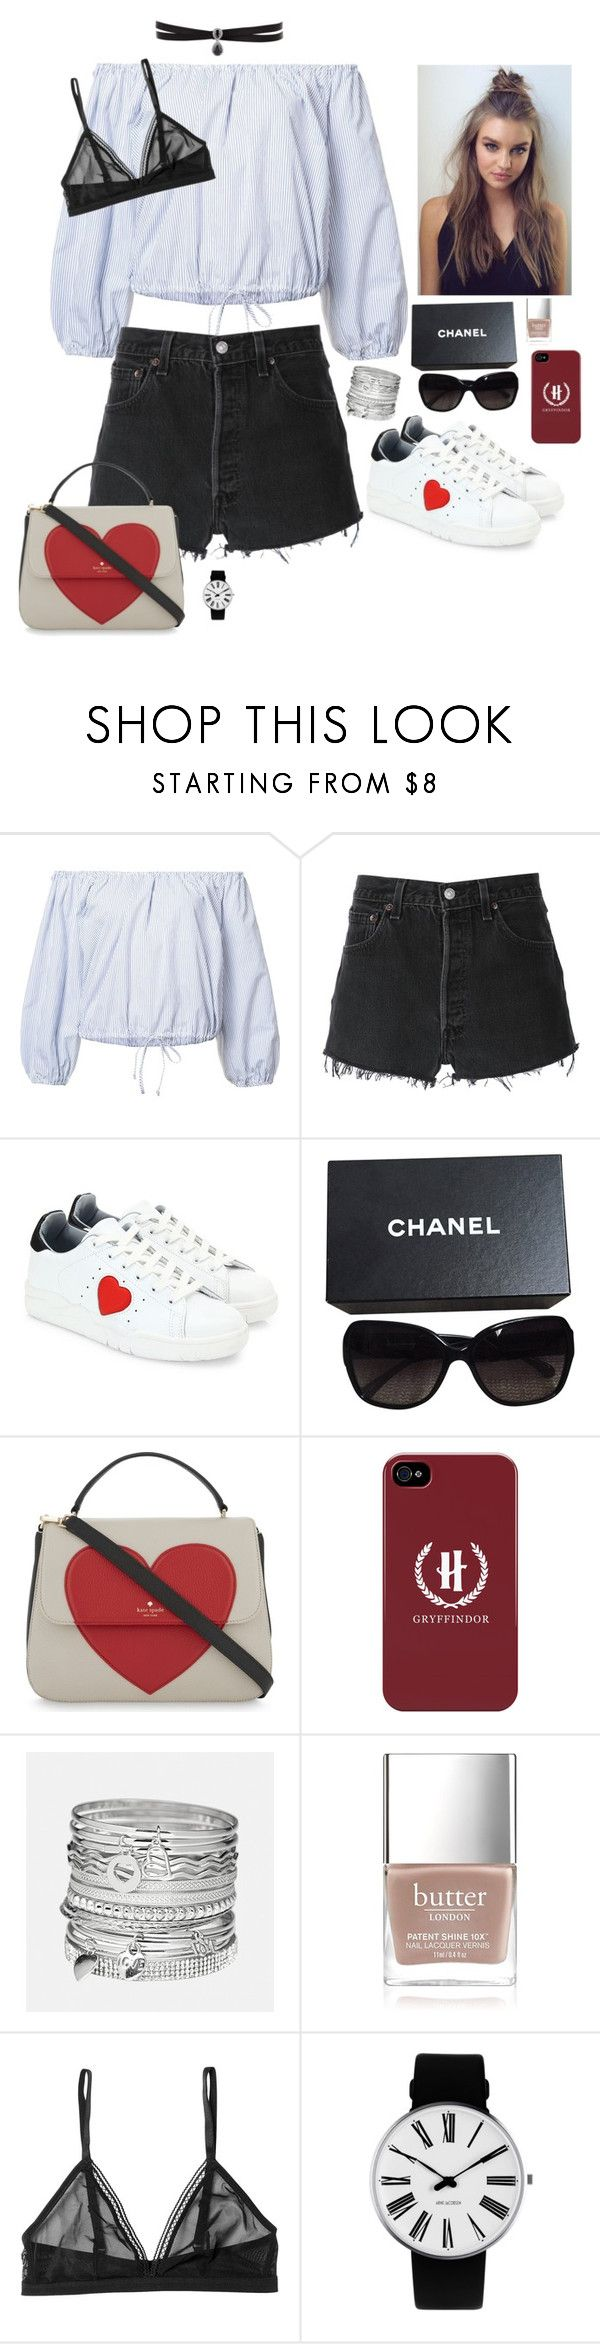 """""""Valentines Day outfit"""" by youngsmile ❤ liked on Polyvore featuring Sea, New York, RE/DONE, Chiara Ferragni, Chanel, Kate Spade, Avenue, Butter London, Monki, Rosendahl and Fallon"""